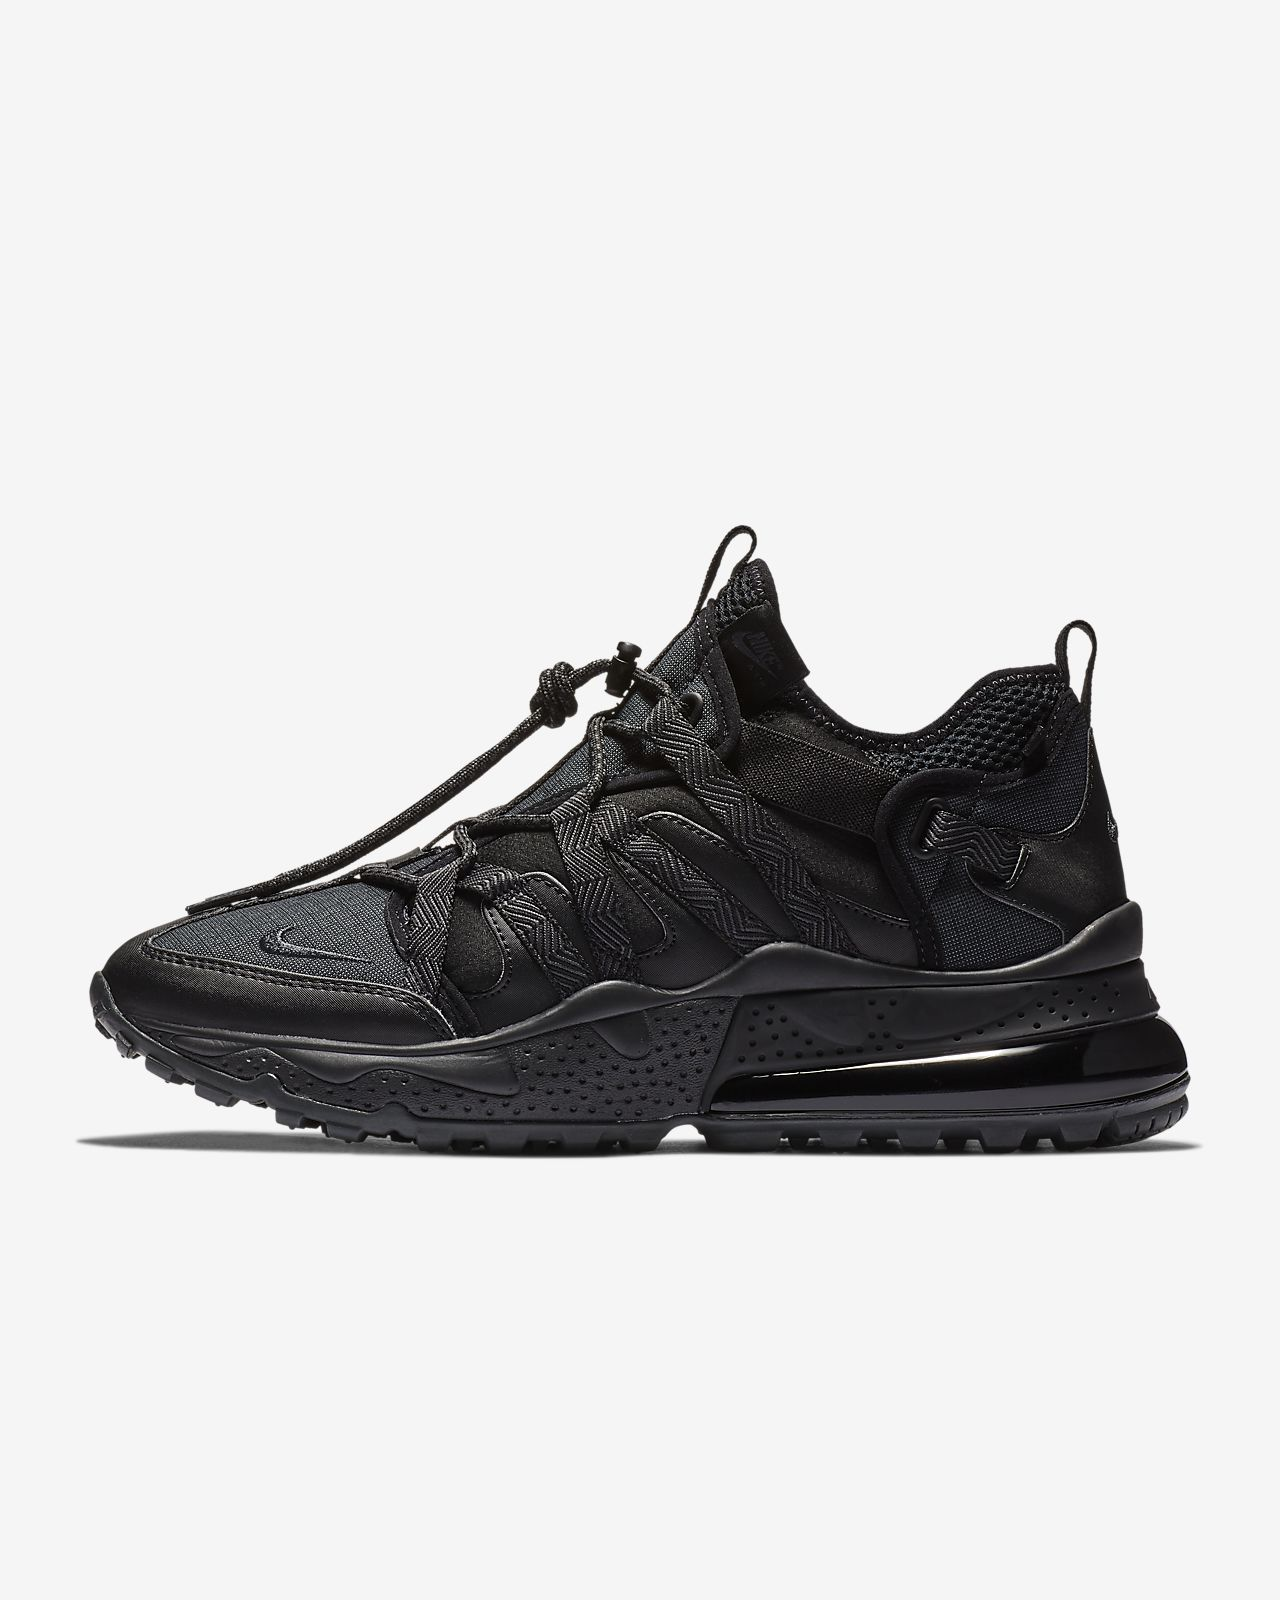 meet f211d 1a5a9 ... Nike Air Max 270 Bowfin Men s Shoe